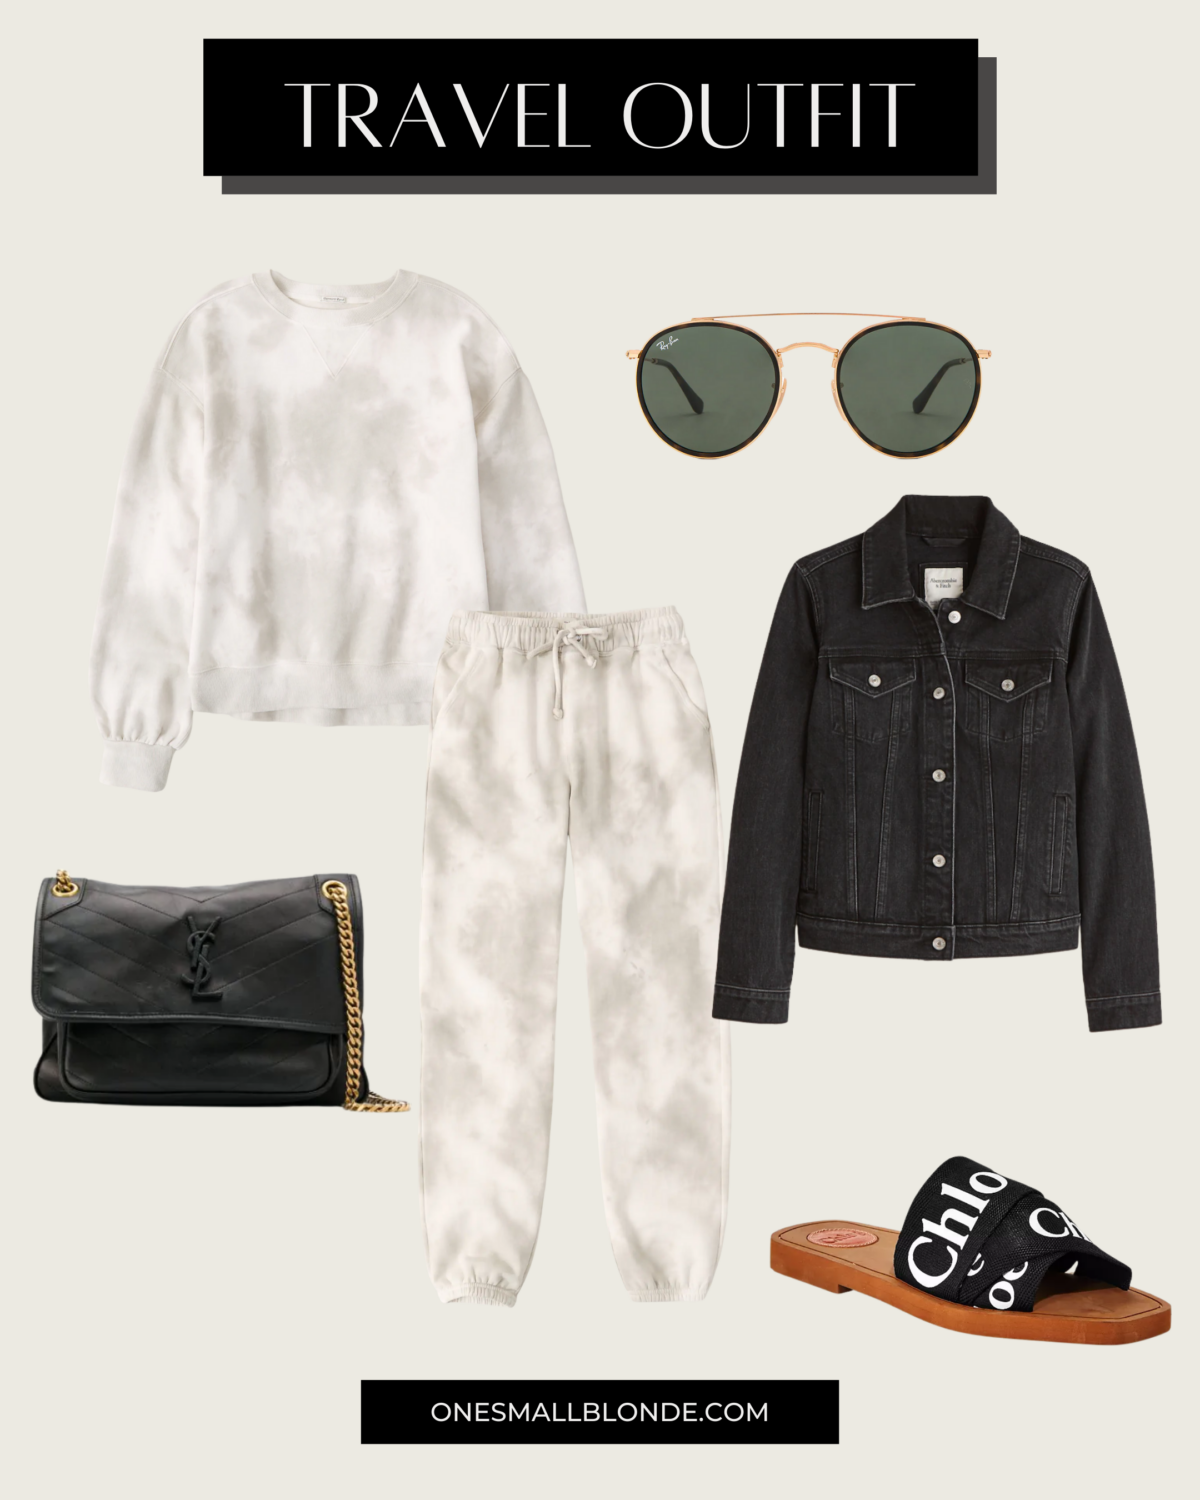 women's travel outfit